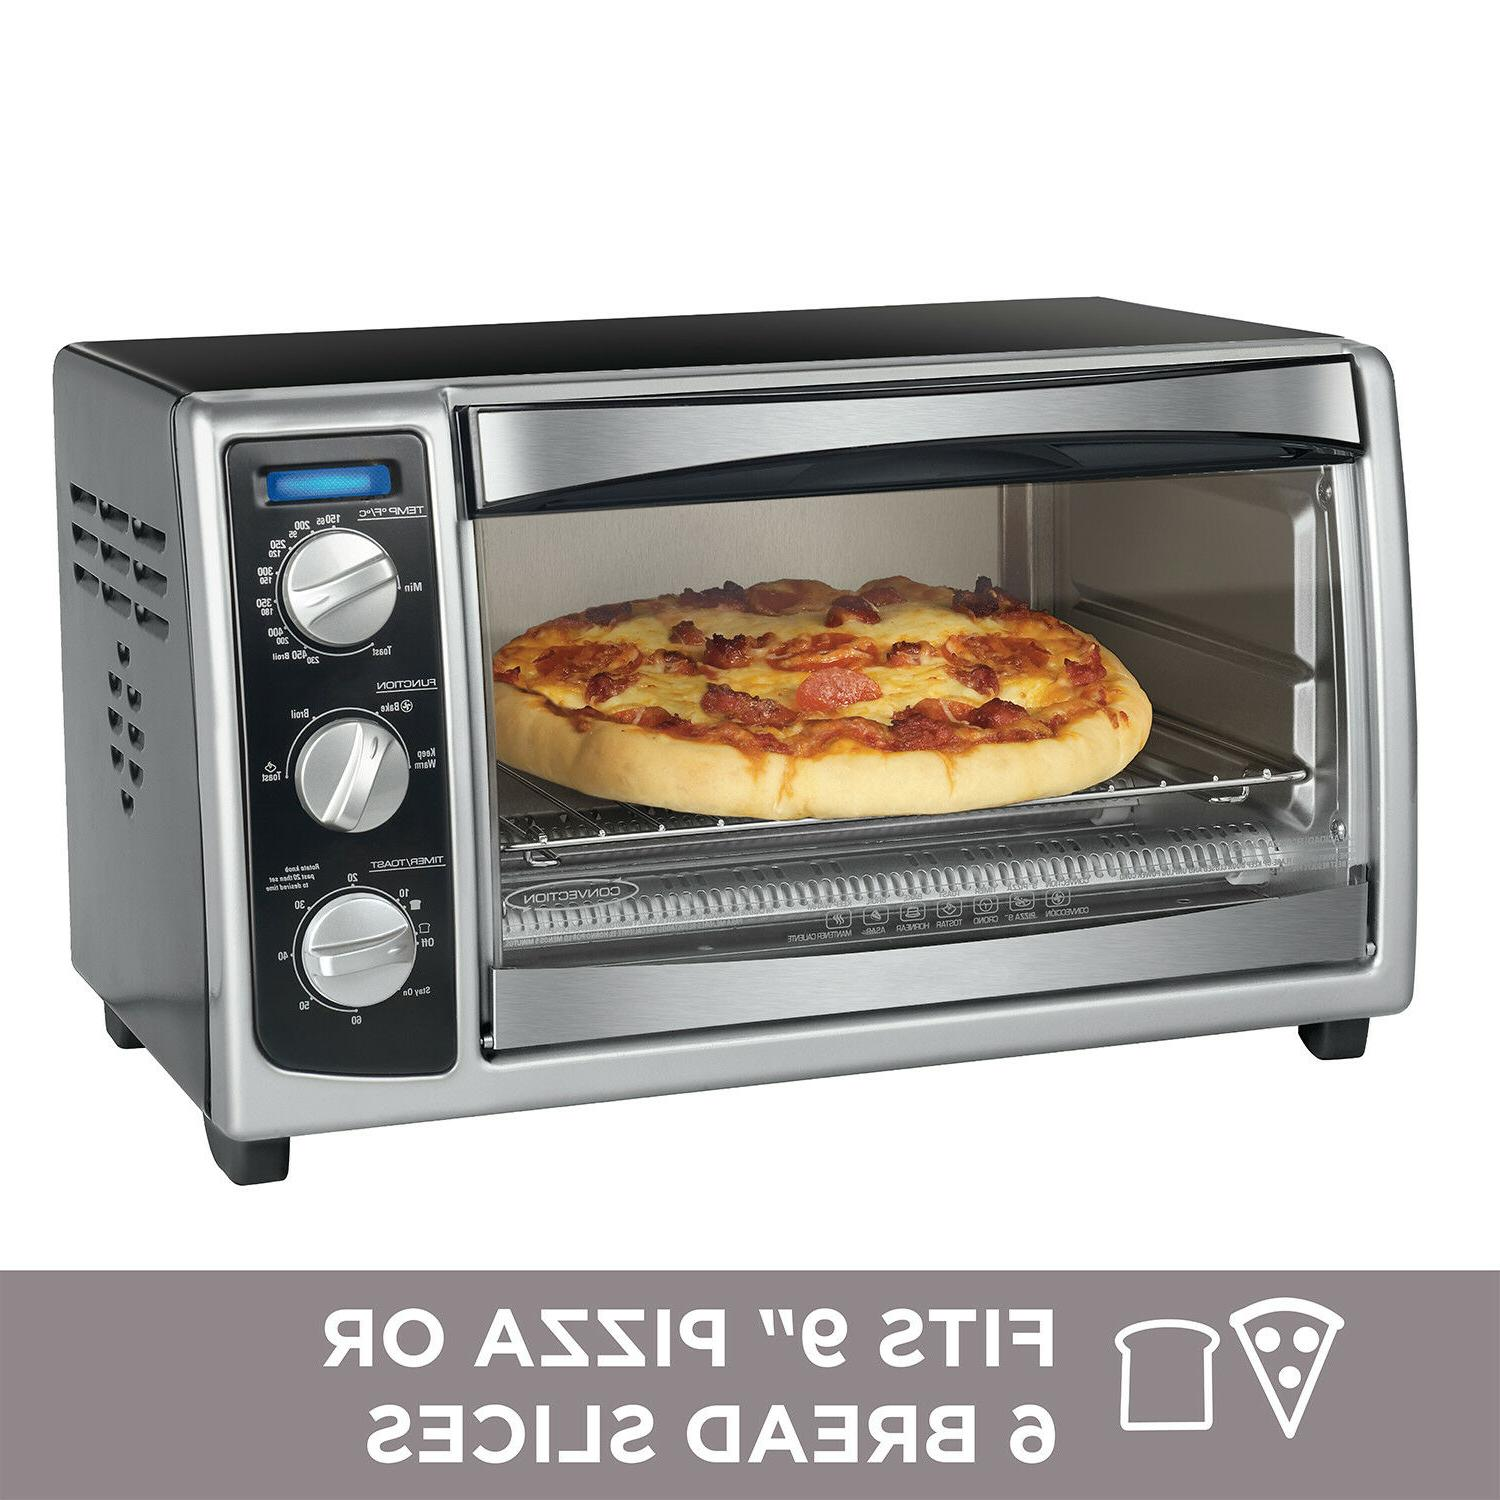 6 Pizza Countertop Stainless Steel &